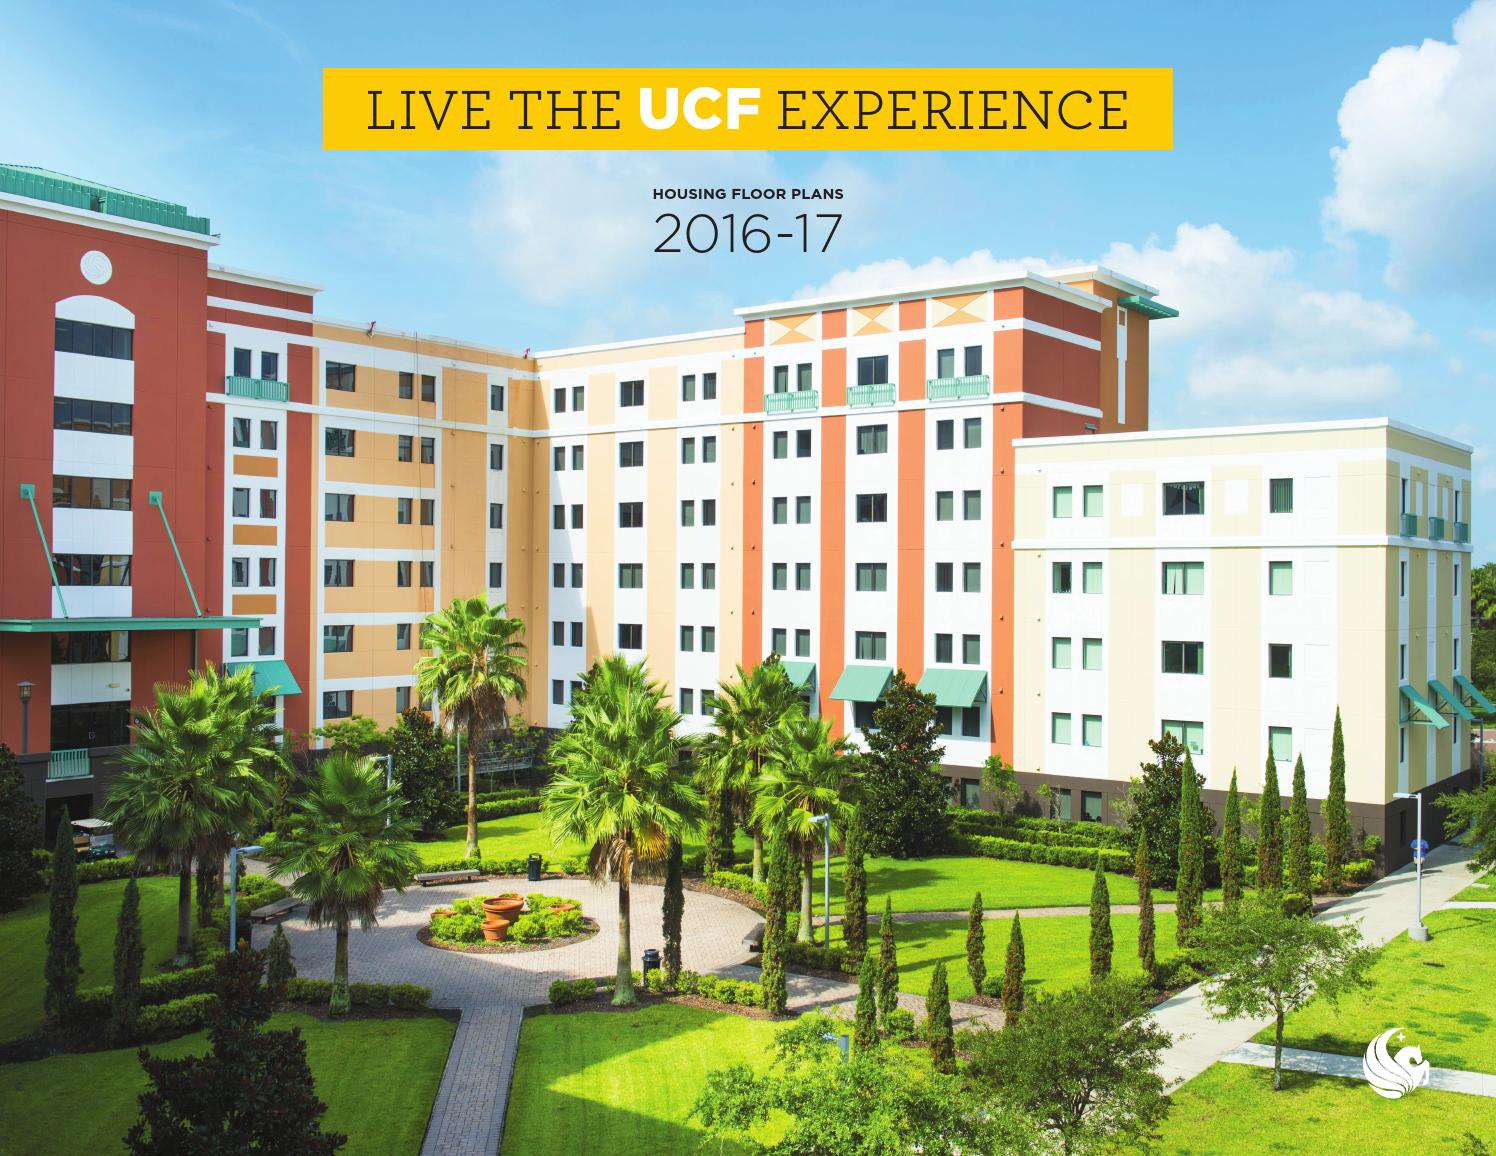 Ucf Housing Floorplans 2016 17 By University Of Central Florida Issuu